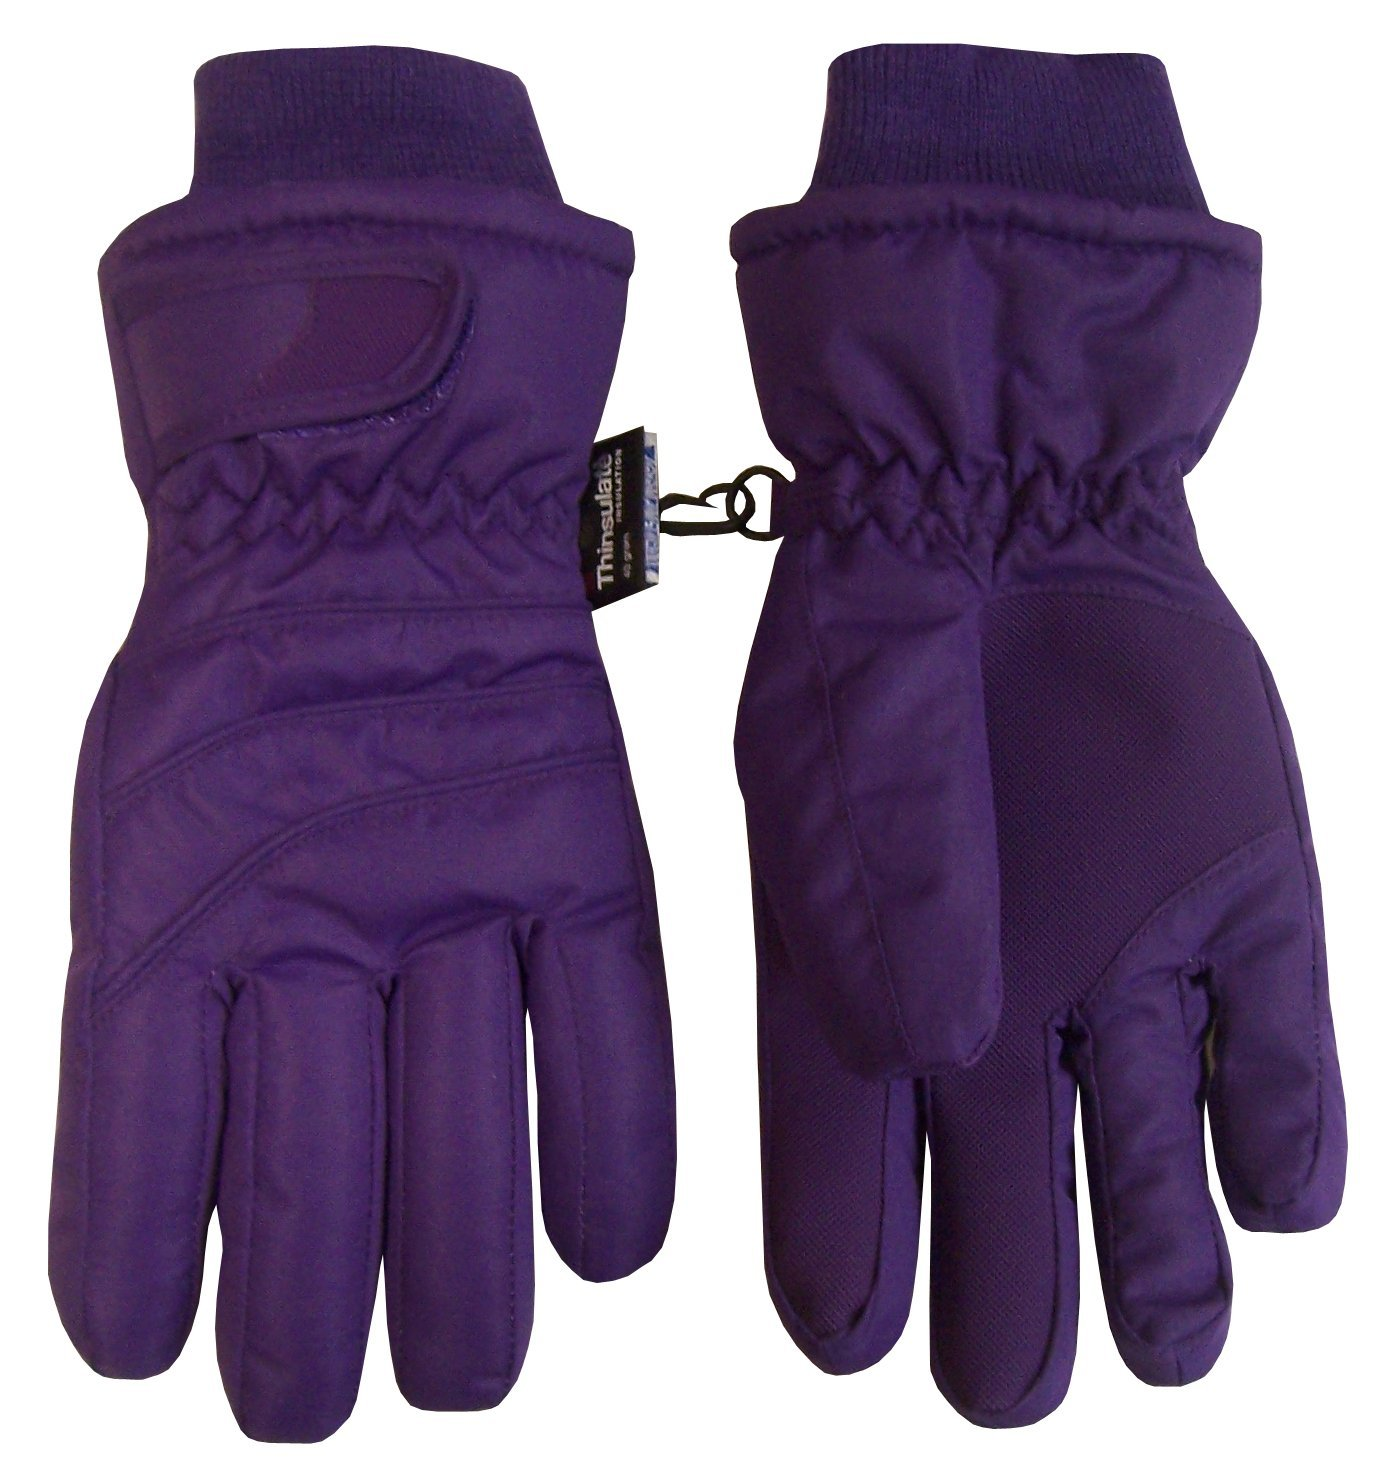 N'Ice Caps Kids Bulky Thinsulate and Waterproof Ski Glove With Ridges (8-10yrs, Dark Purple)